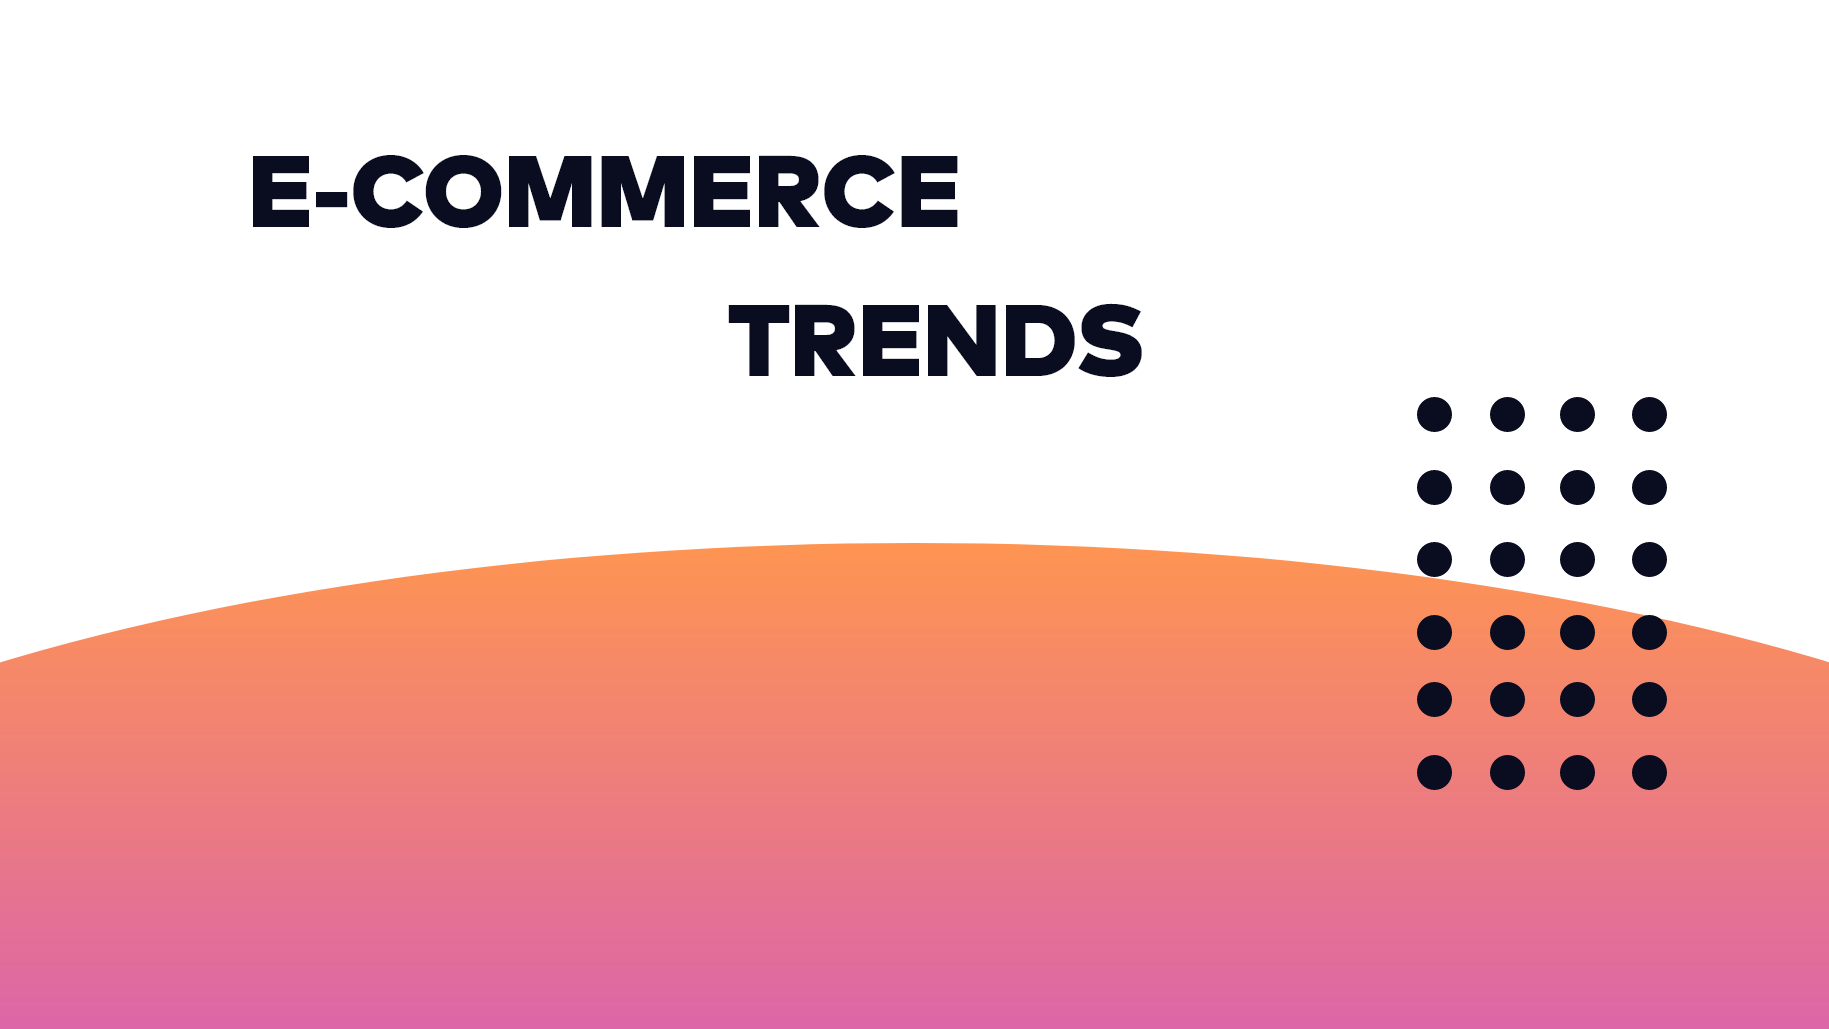 4 Trends that will Shape the Future of E-commerce